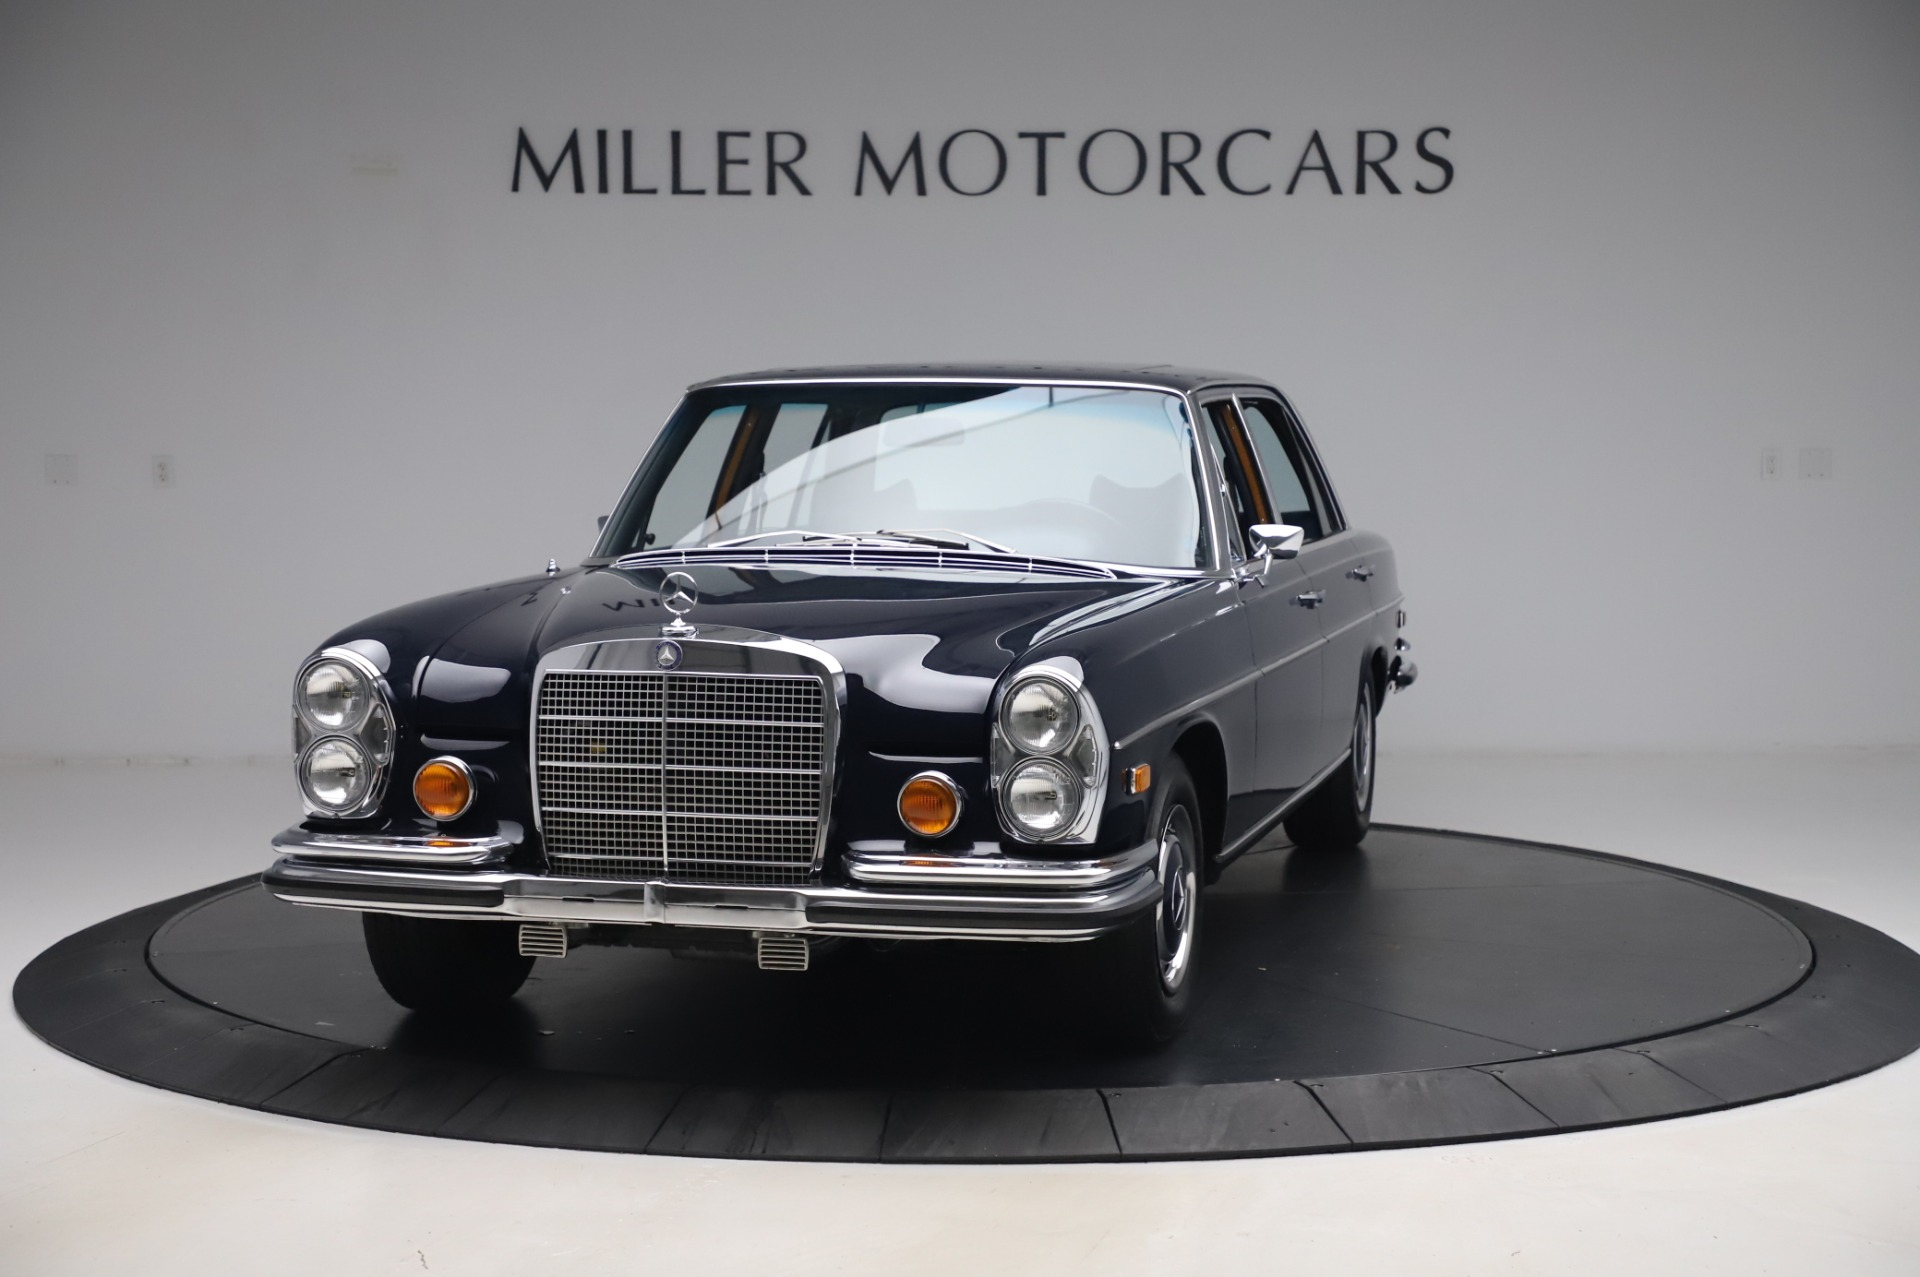 Used 1971 Mercedes-Benz 300 SEL 6.3 for sale $117,000 at Rolls-Royce Motor Cars Greenwich in Greenwich CT 06830 1